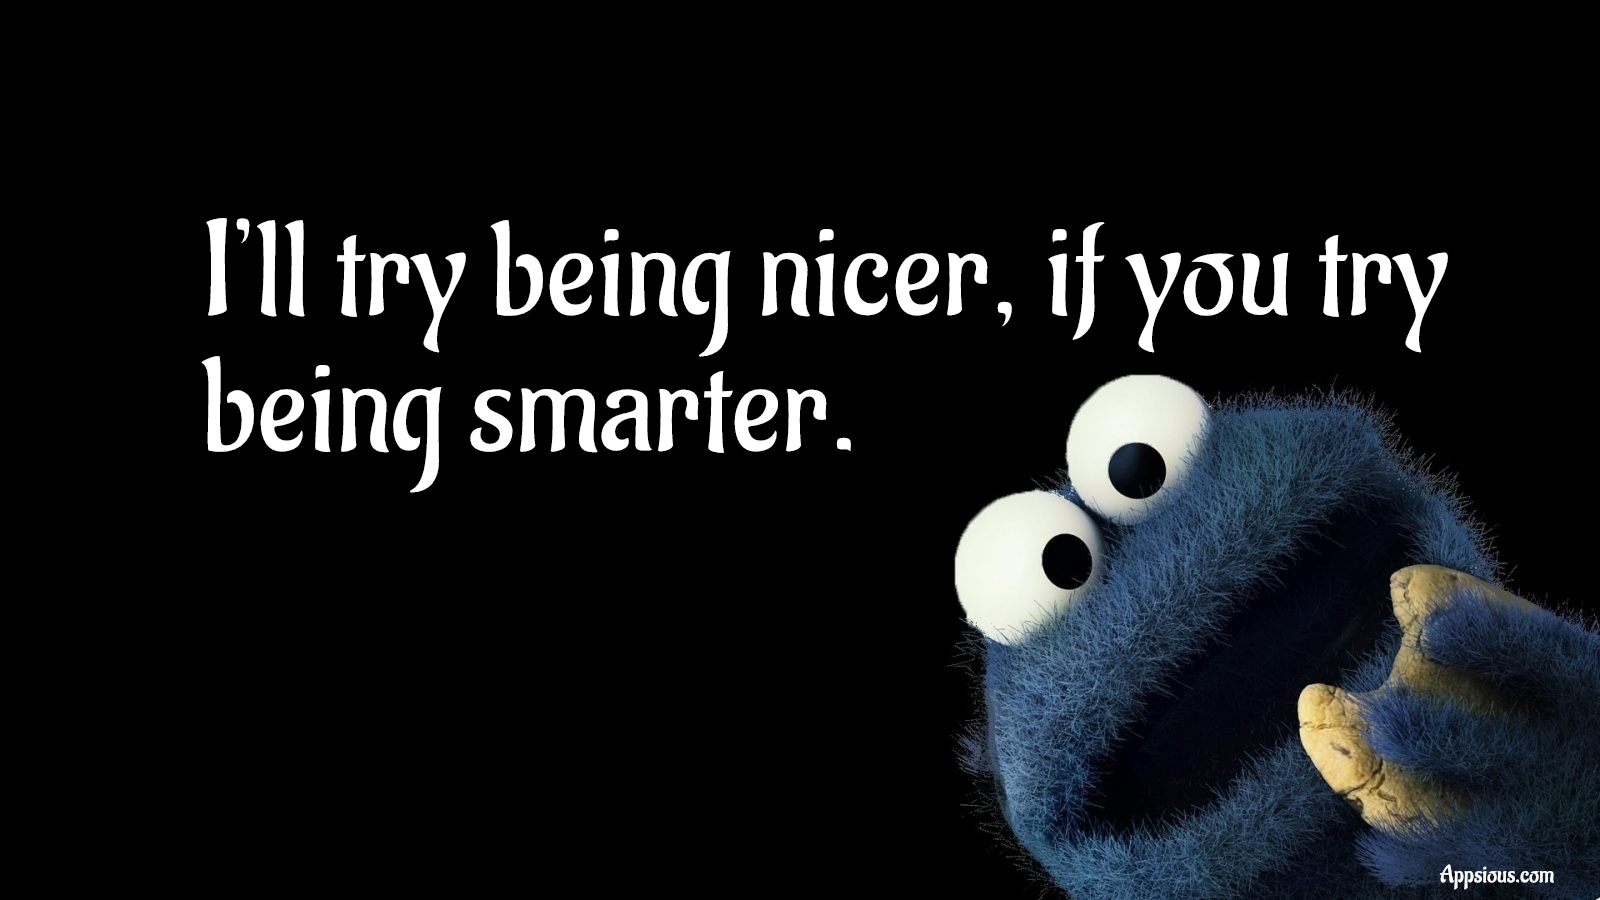 I'll try being nicer, if you try being smarter.